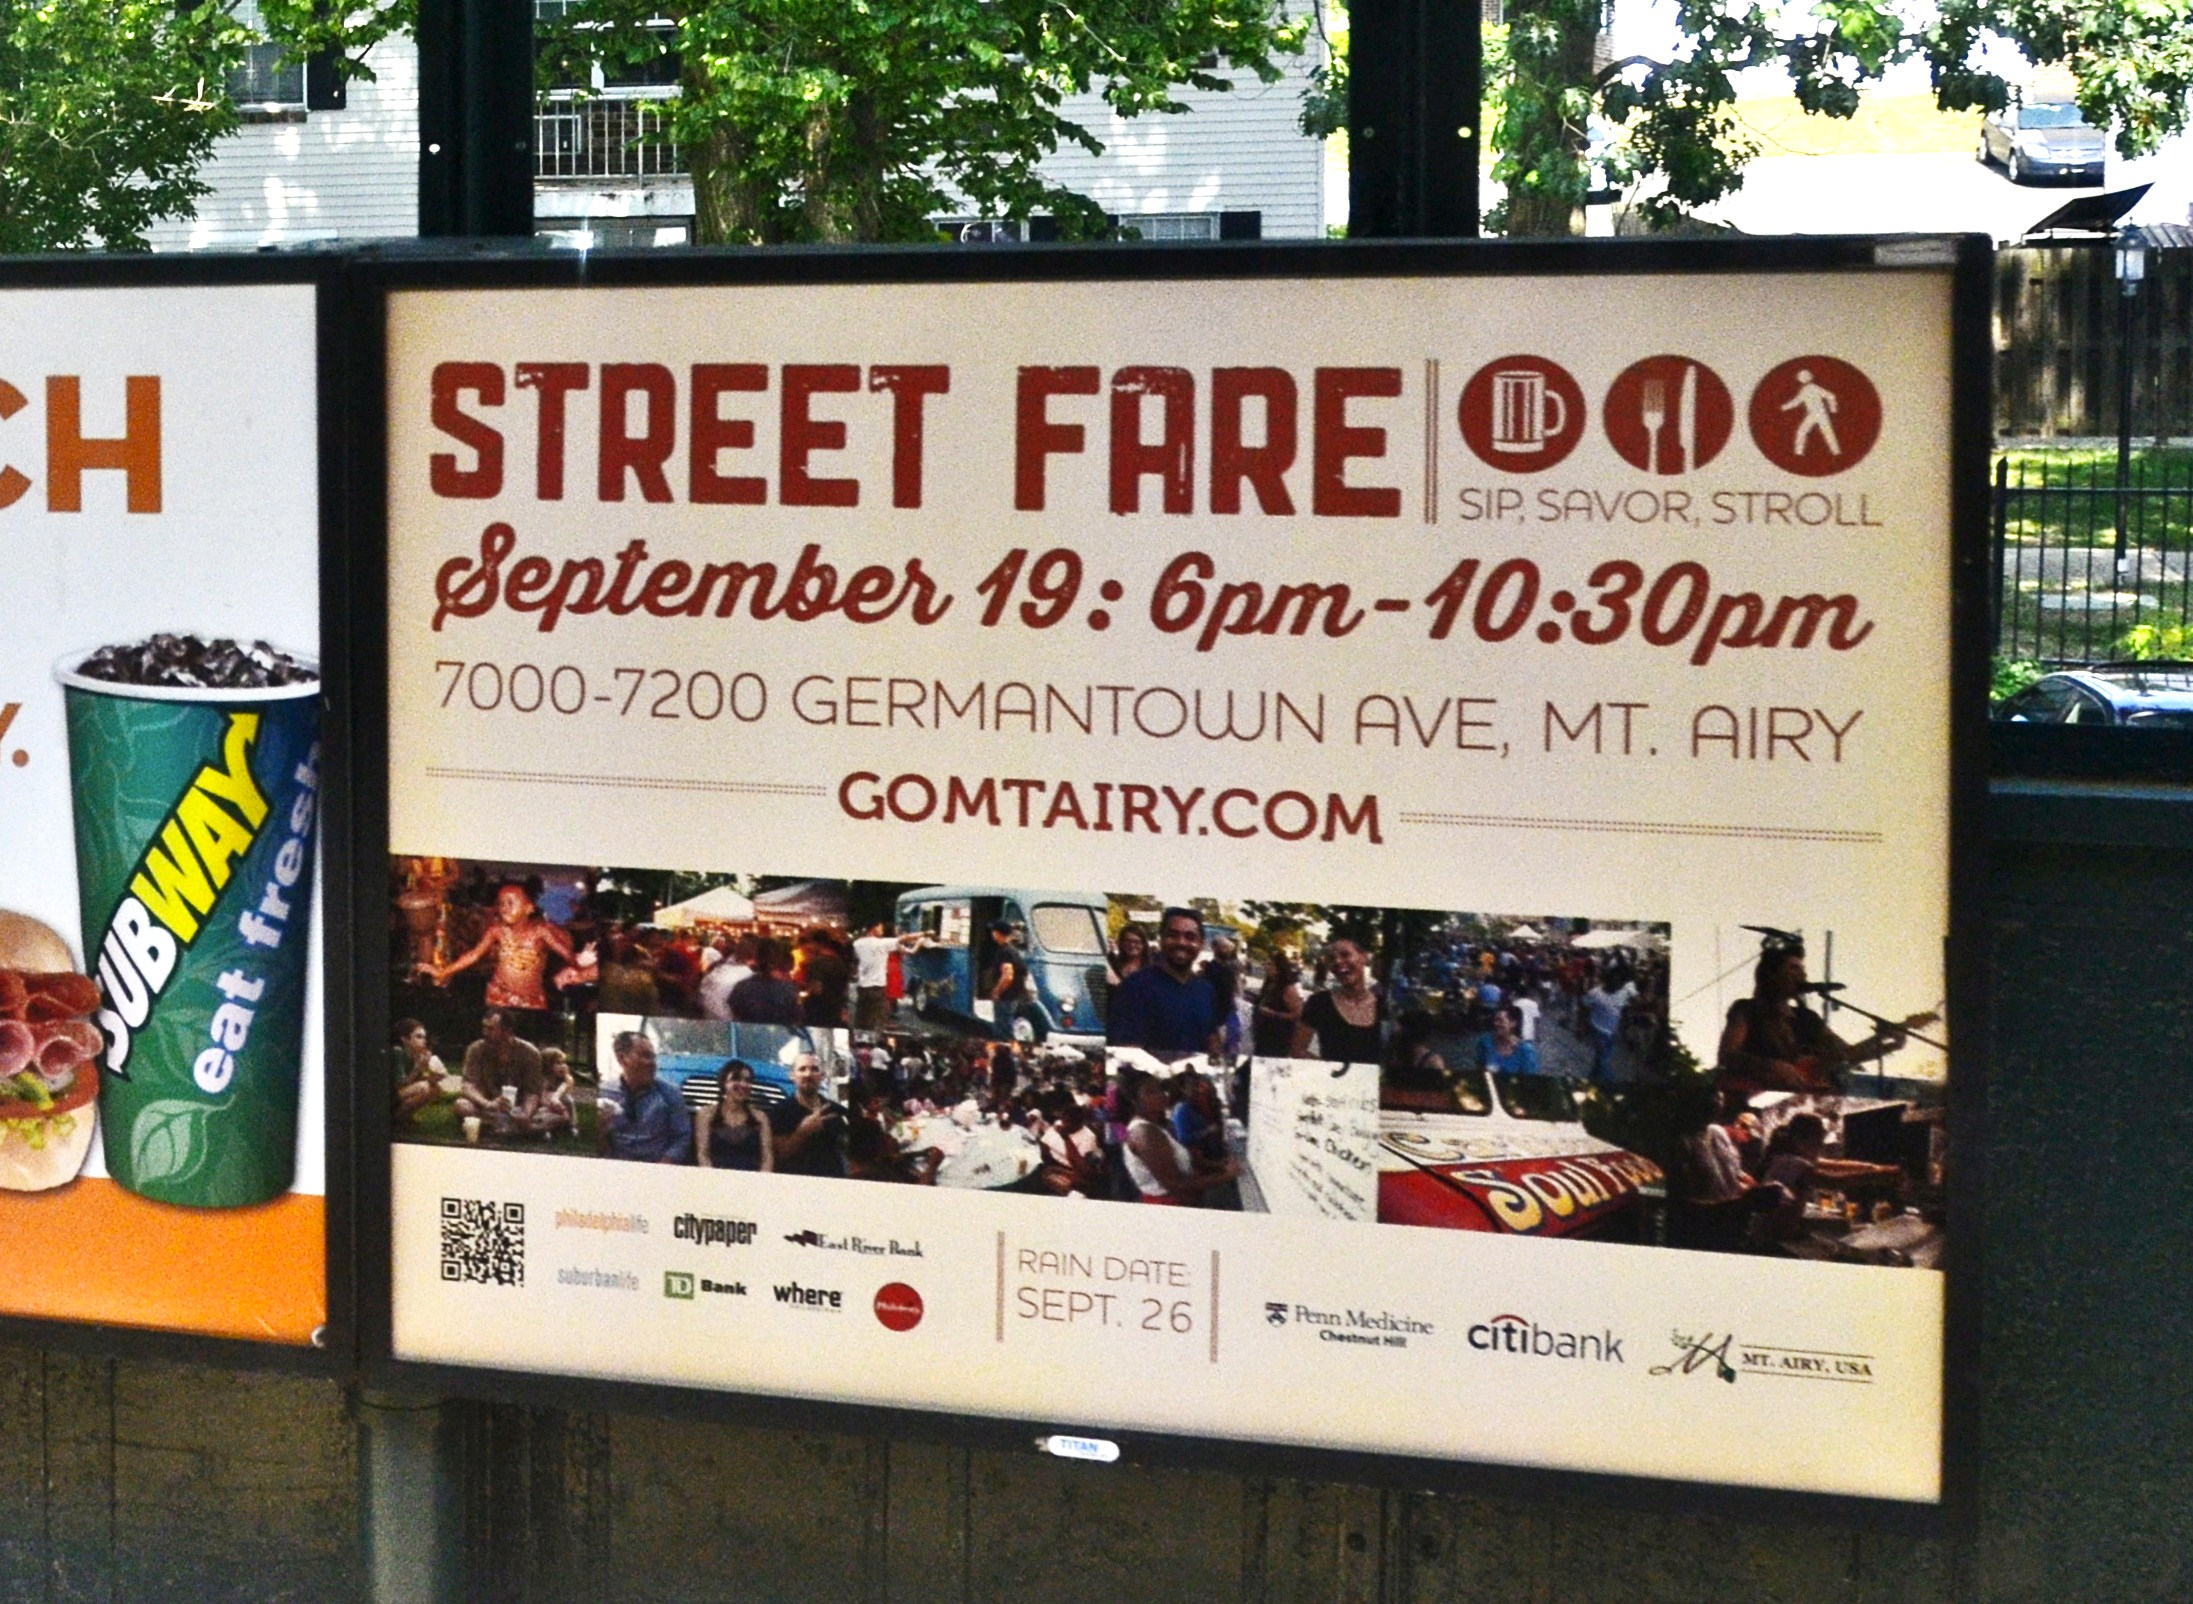 Mt. Airy, Street Fare, Sip Savor Stroll, SEPTA Posters